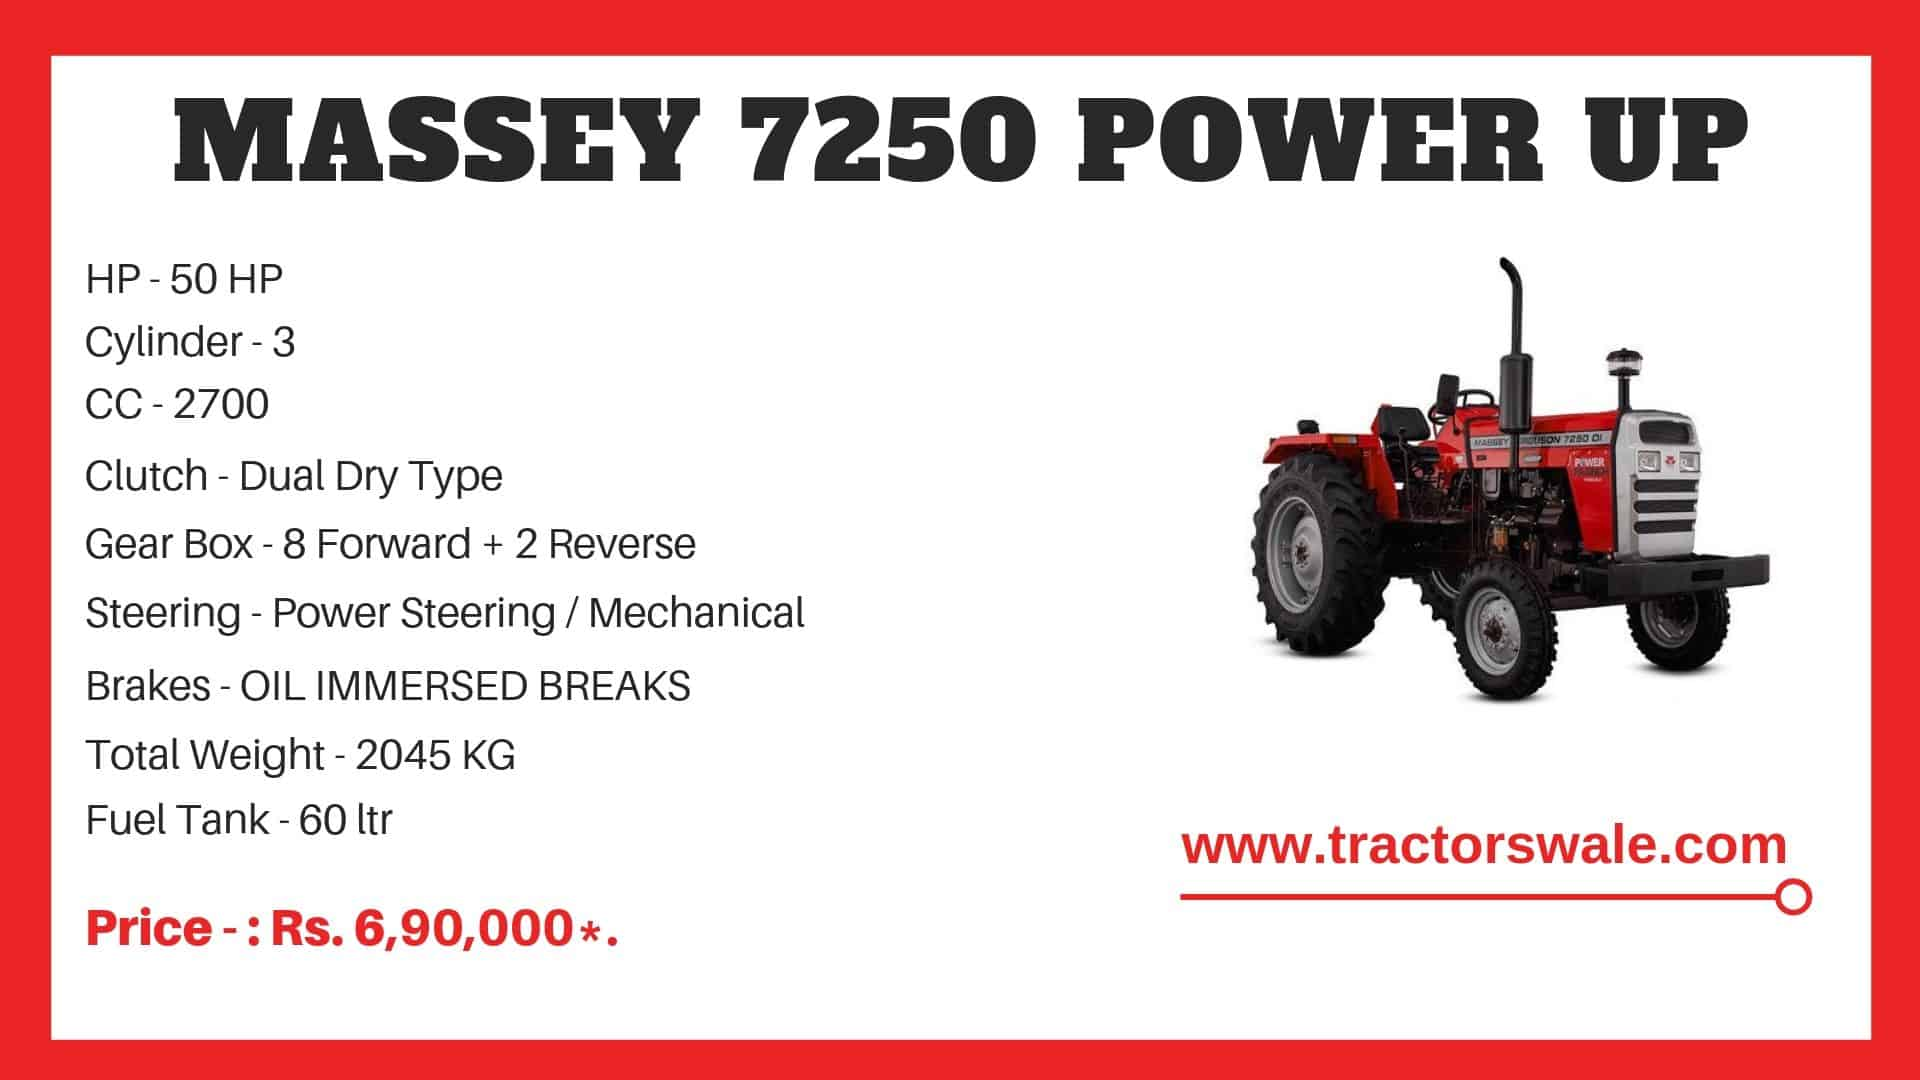 Specifications Of Massey Ferguson 7250 Power Up Tractor